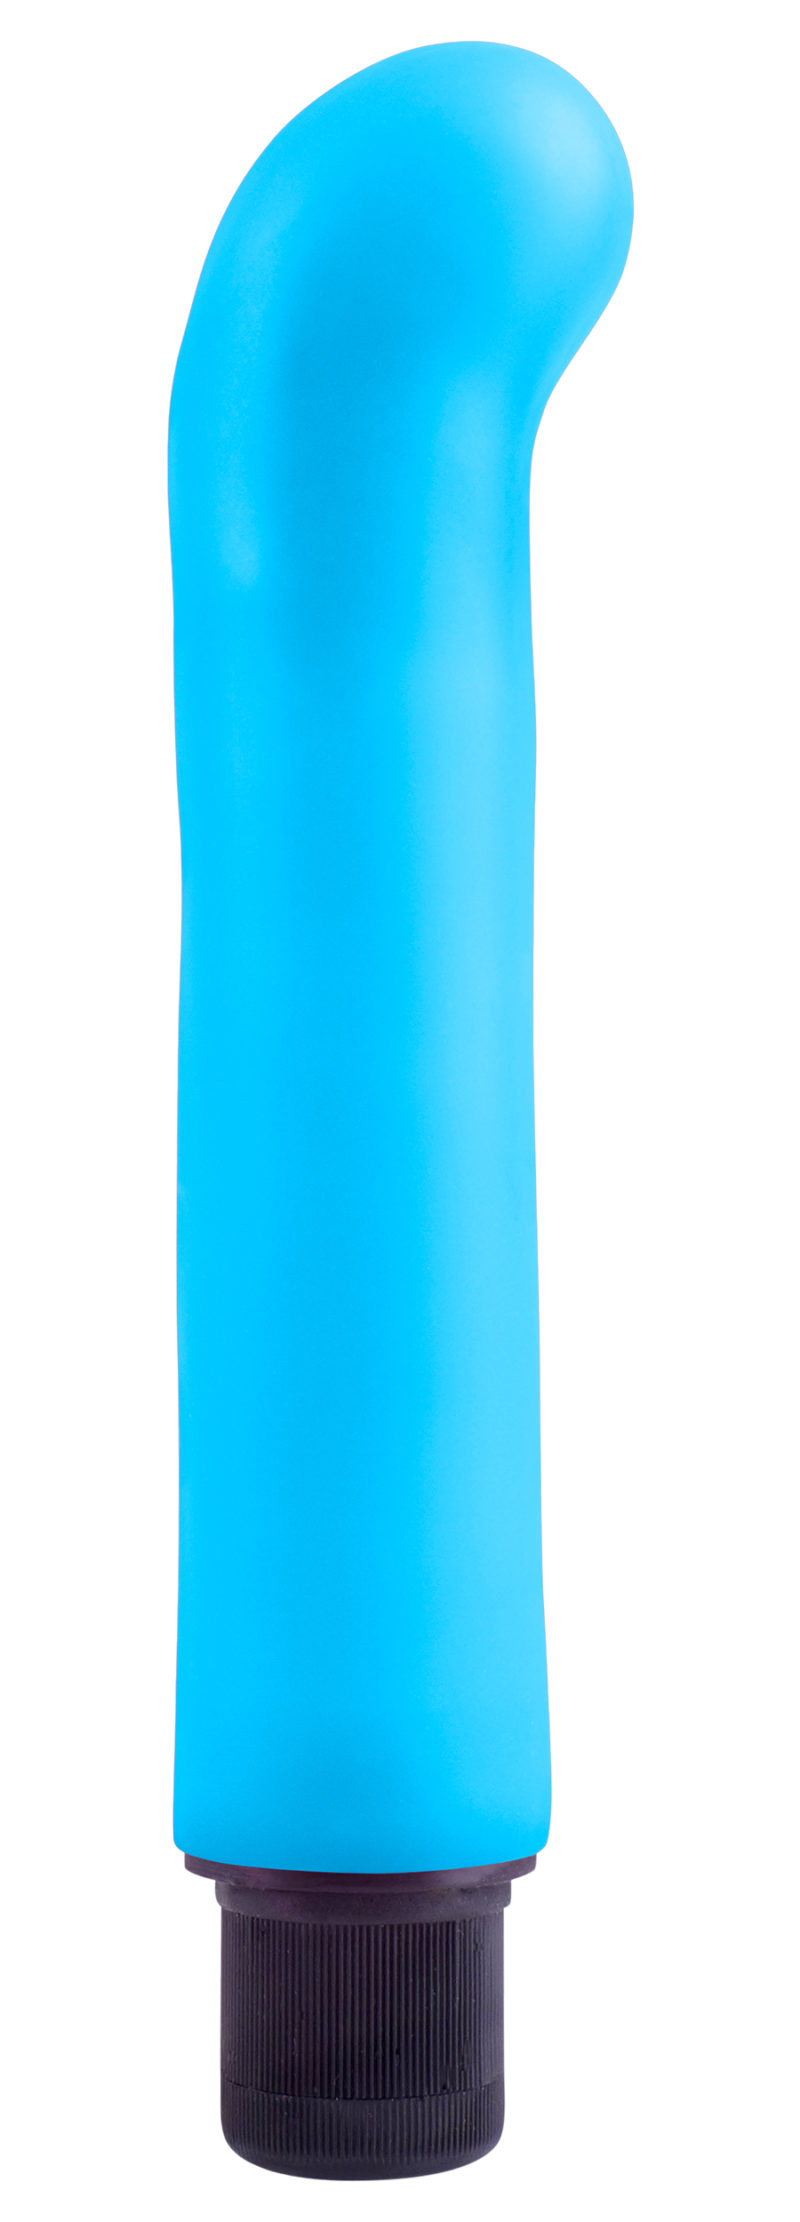 Pipedream Neon Luv Touch XL G-Spot Softee